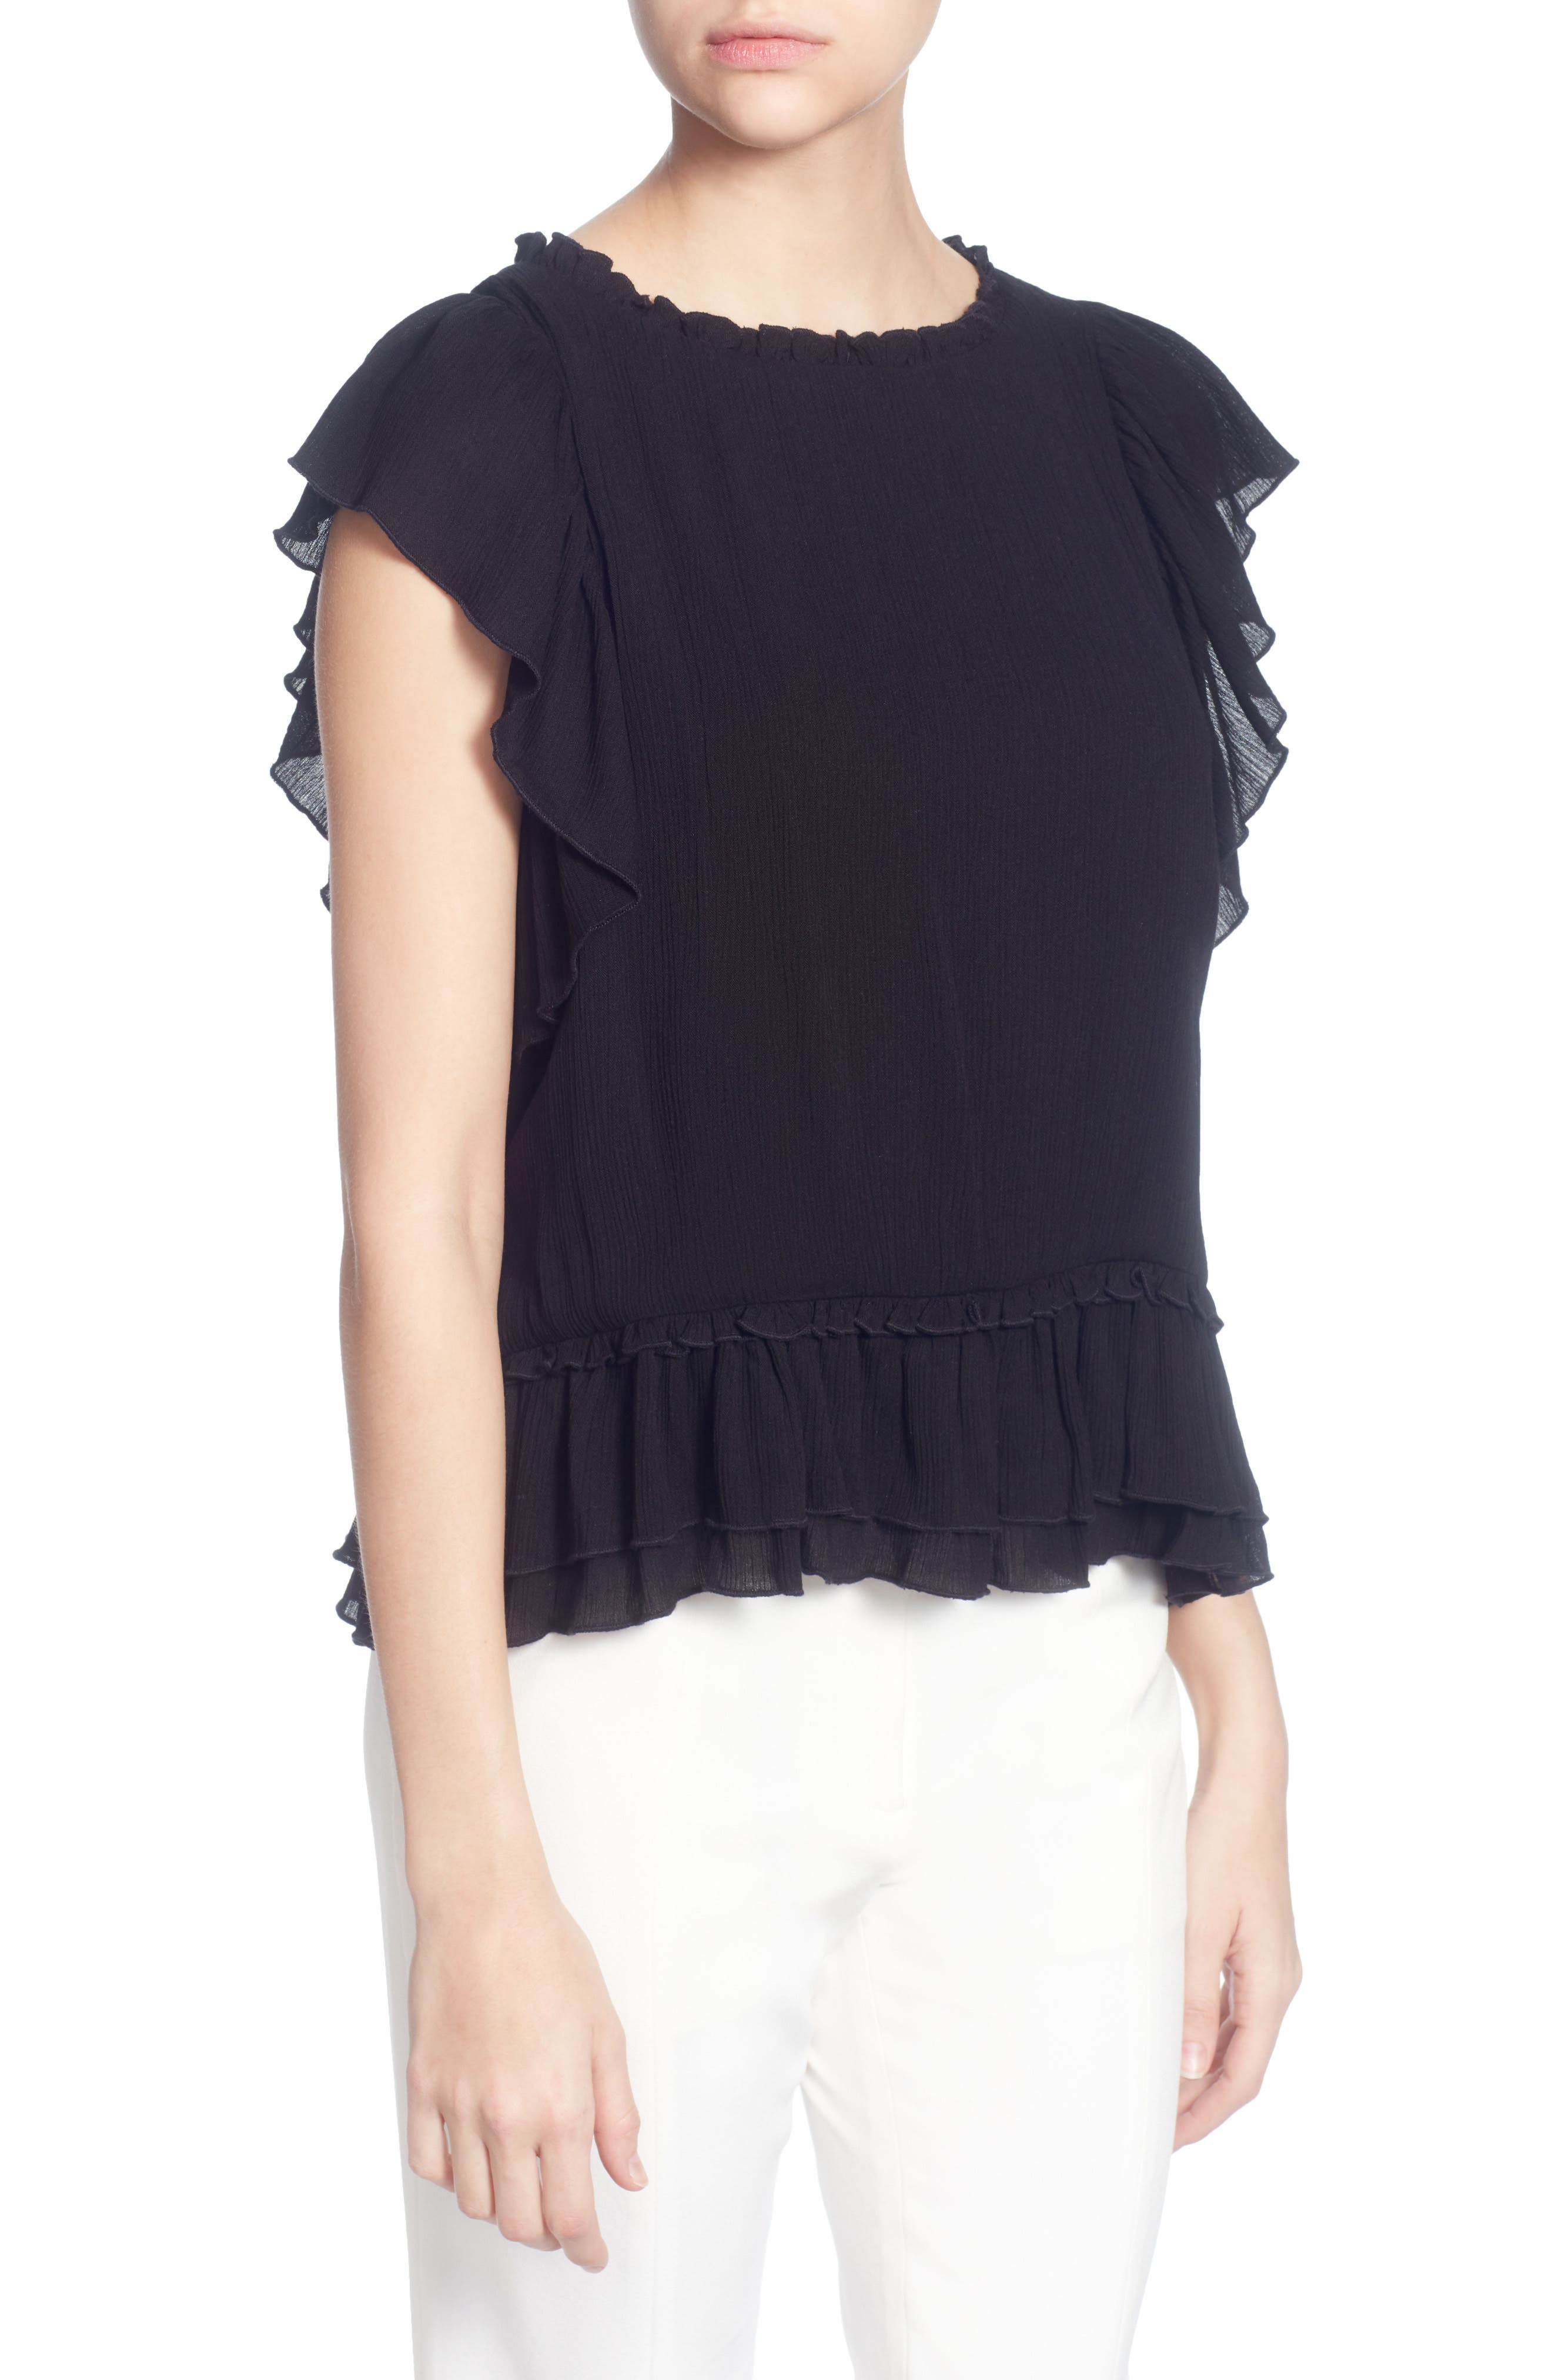 Hollis Ruffled Top,                             Main thumbnail 1, color,                             001